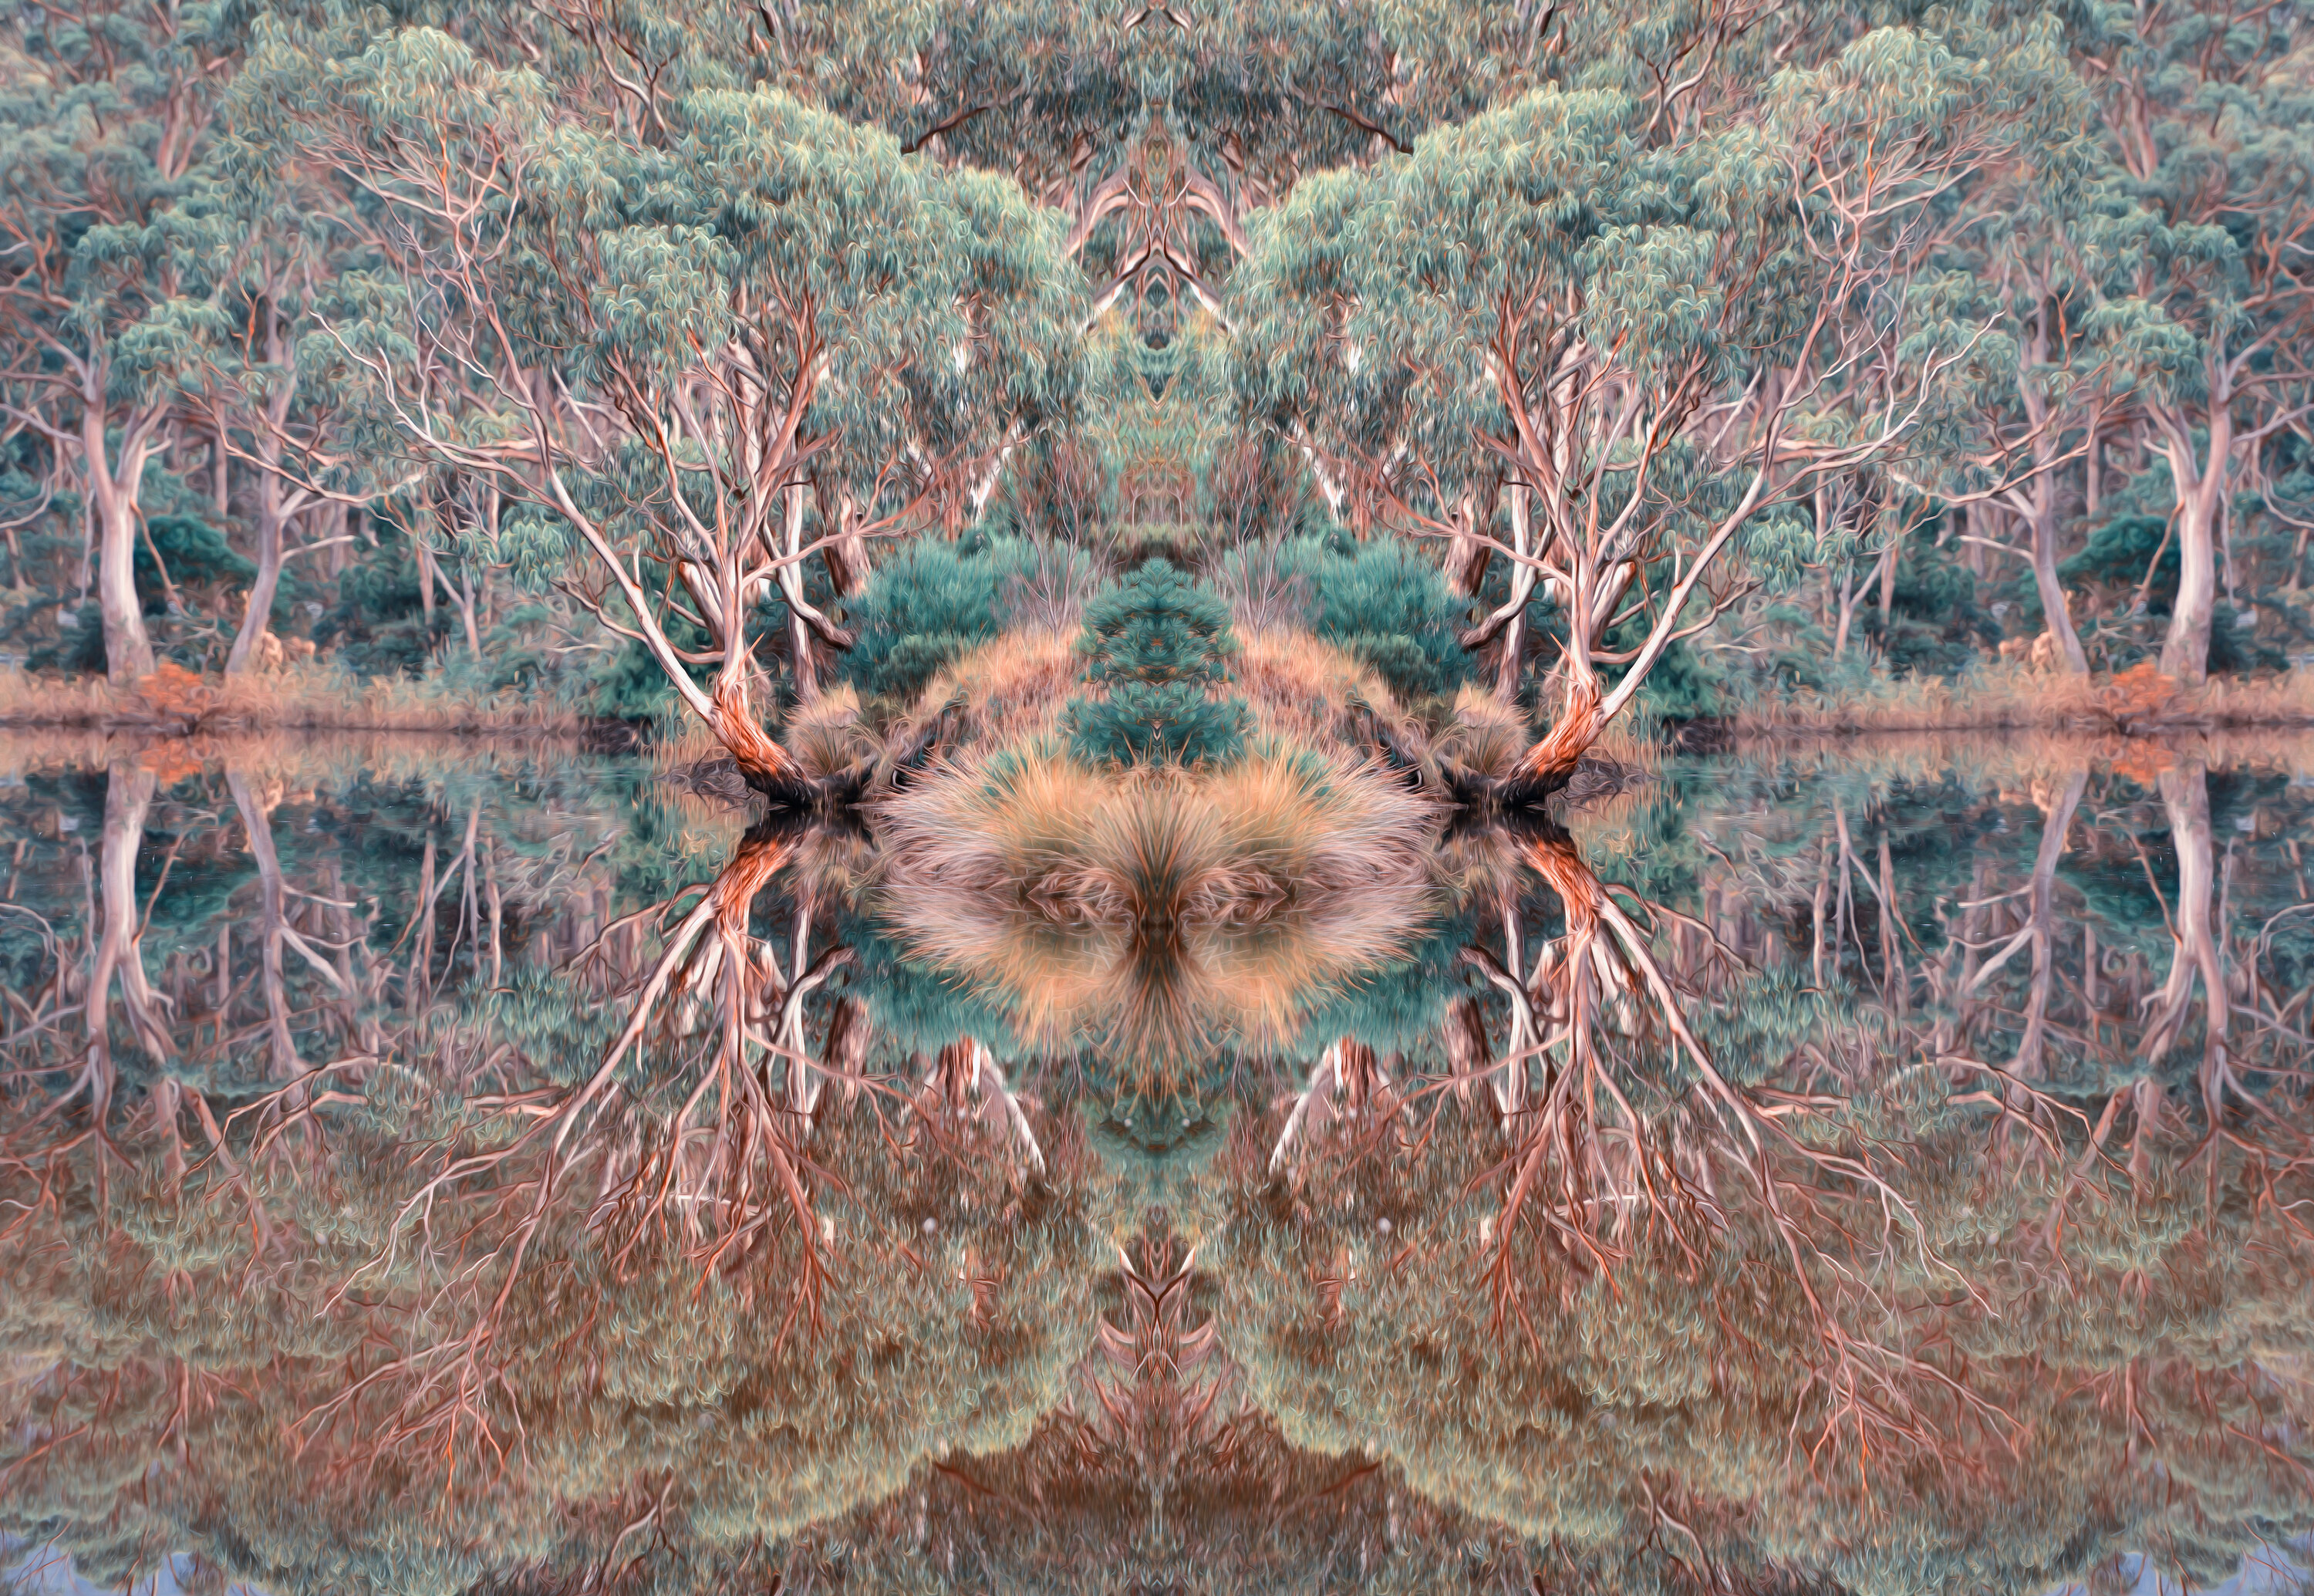 Digital artwork by Indigenous artists Wayne Quilliam, featuring a reflective pool and gum trees.